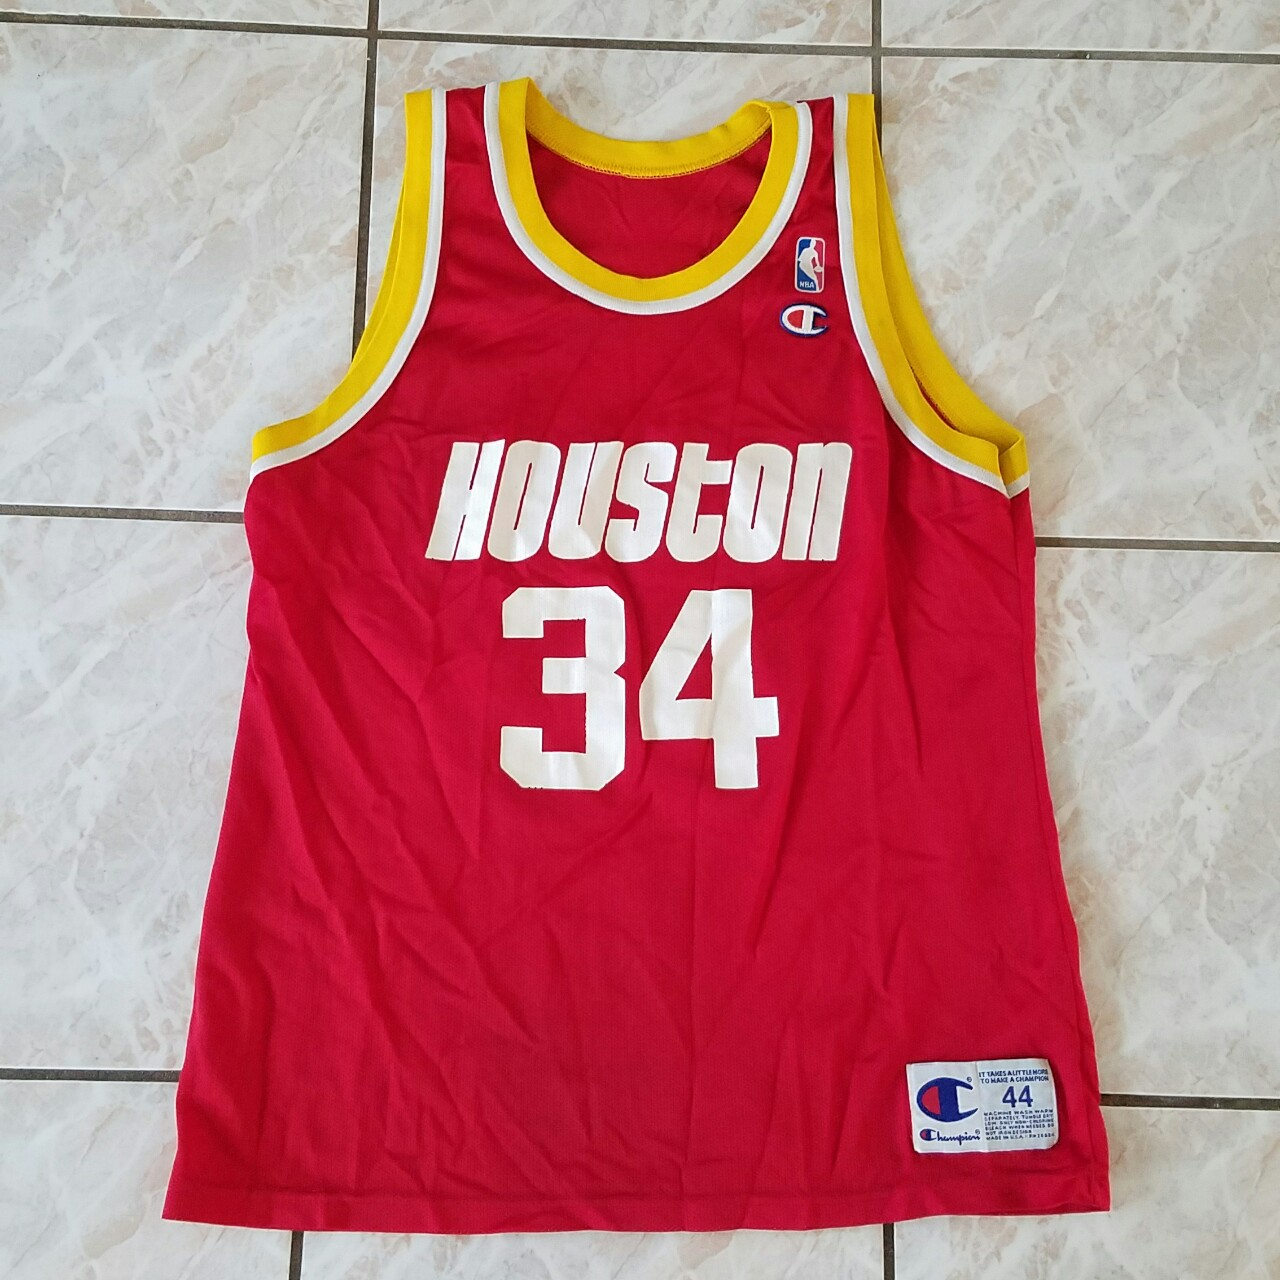 new product 6545d b4855 Vintage Houston rockets champion jersey can fit... - Depop